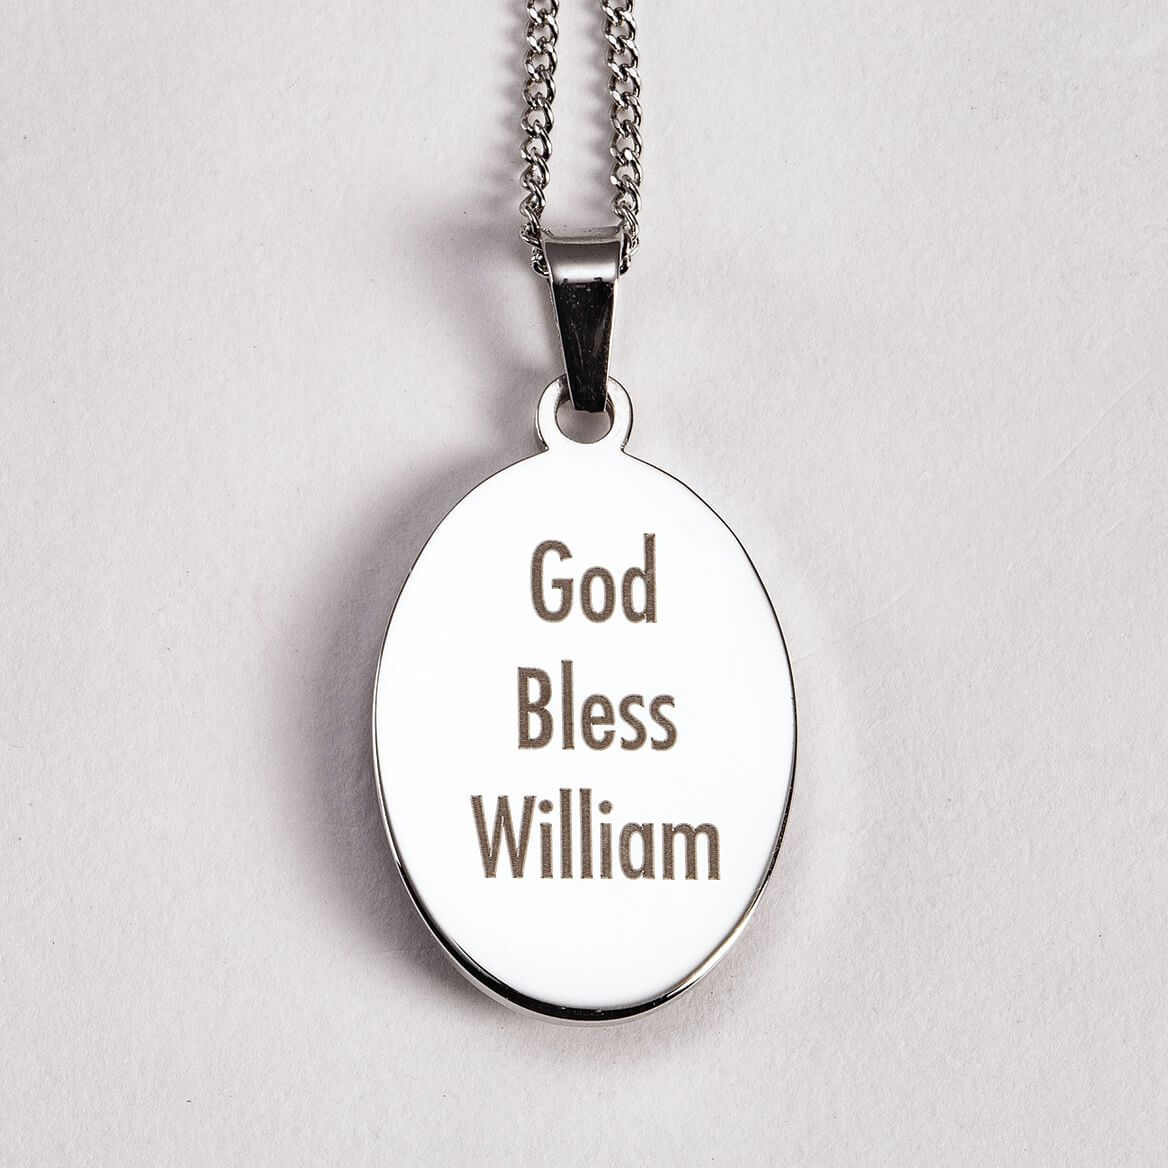 Personalized St. Christopher Medallion Necklace-371579